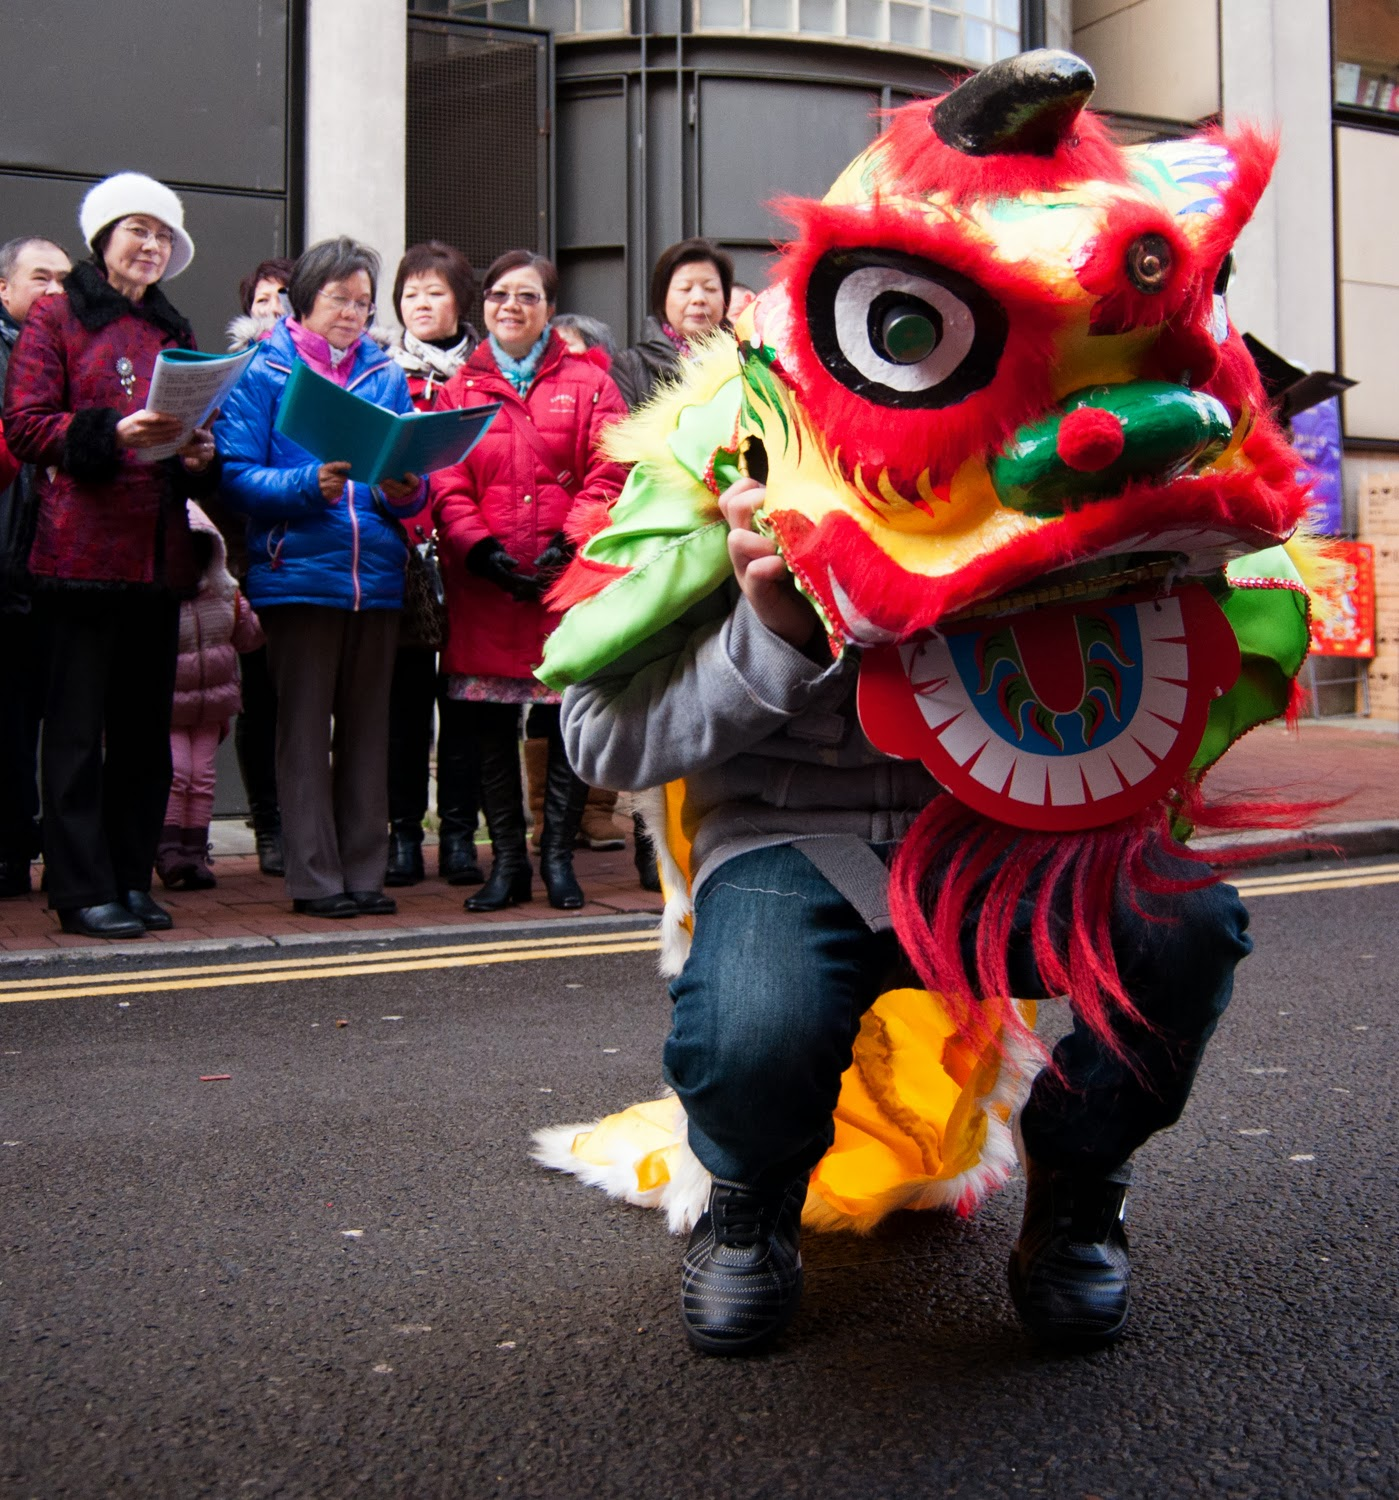 annabruce photo essay chinese new year in manchester anna photo essay chinese new year in manchester 2014